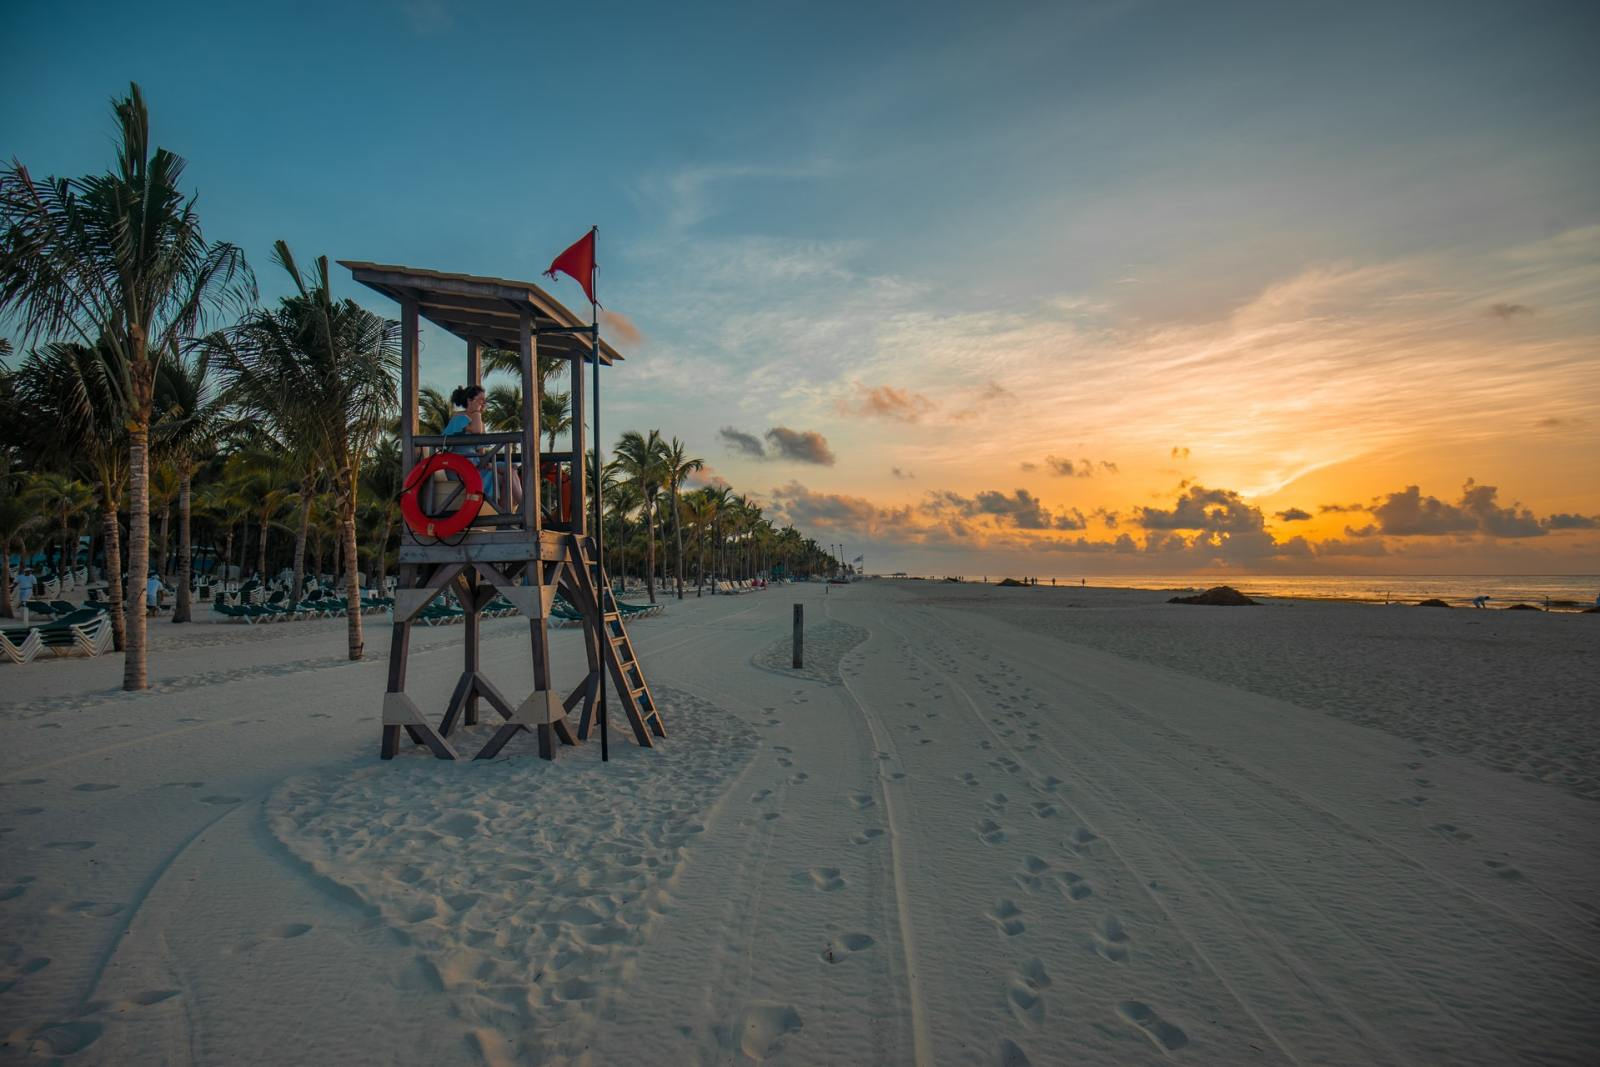 The Best Areas to Stay in Playa del Carmen, Mexico